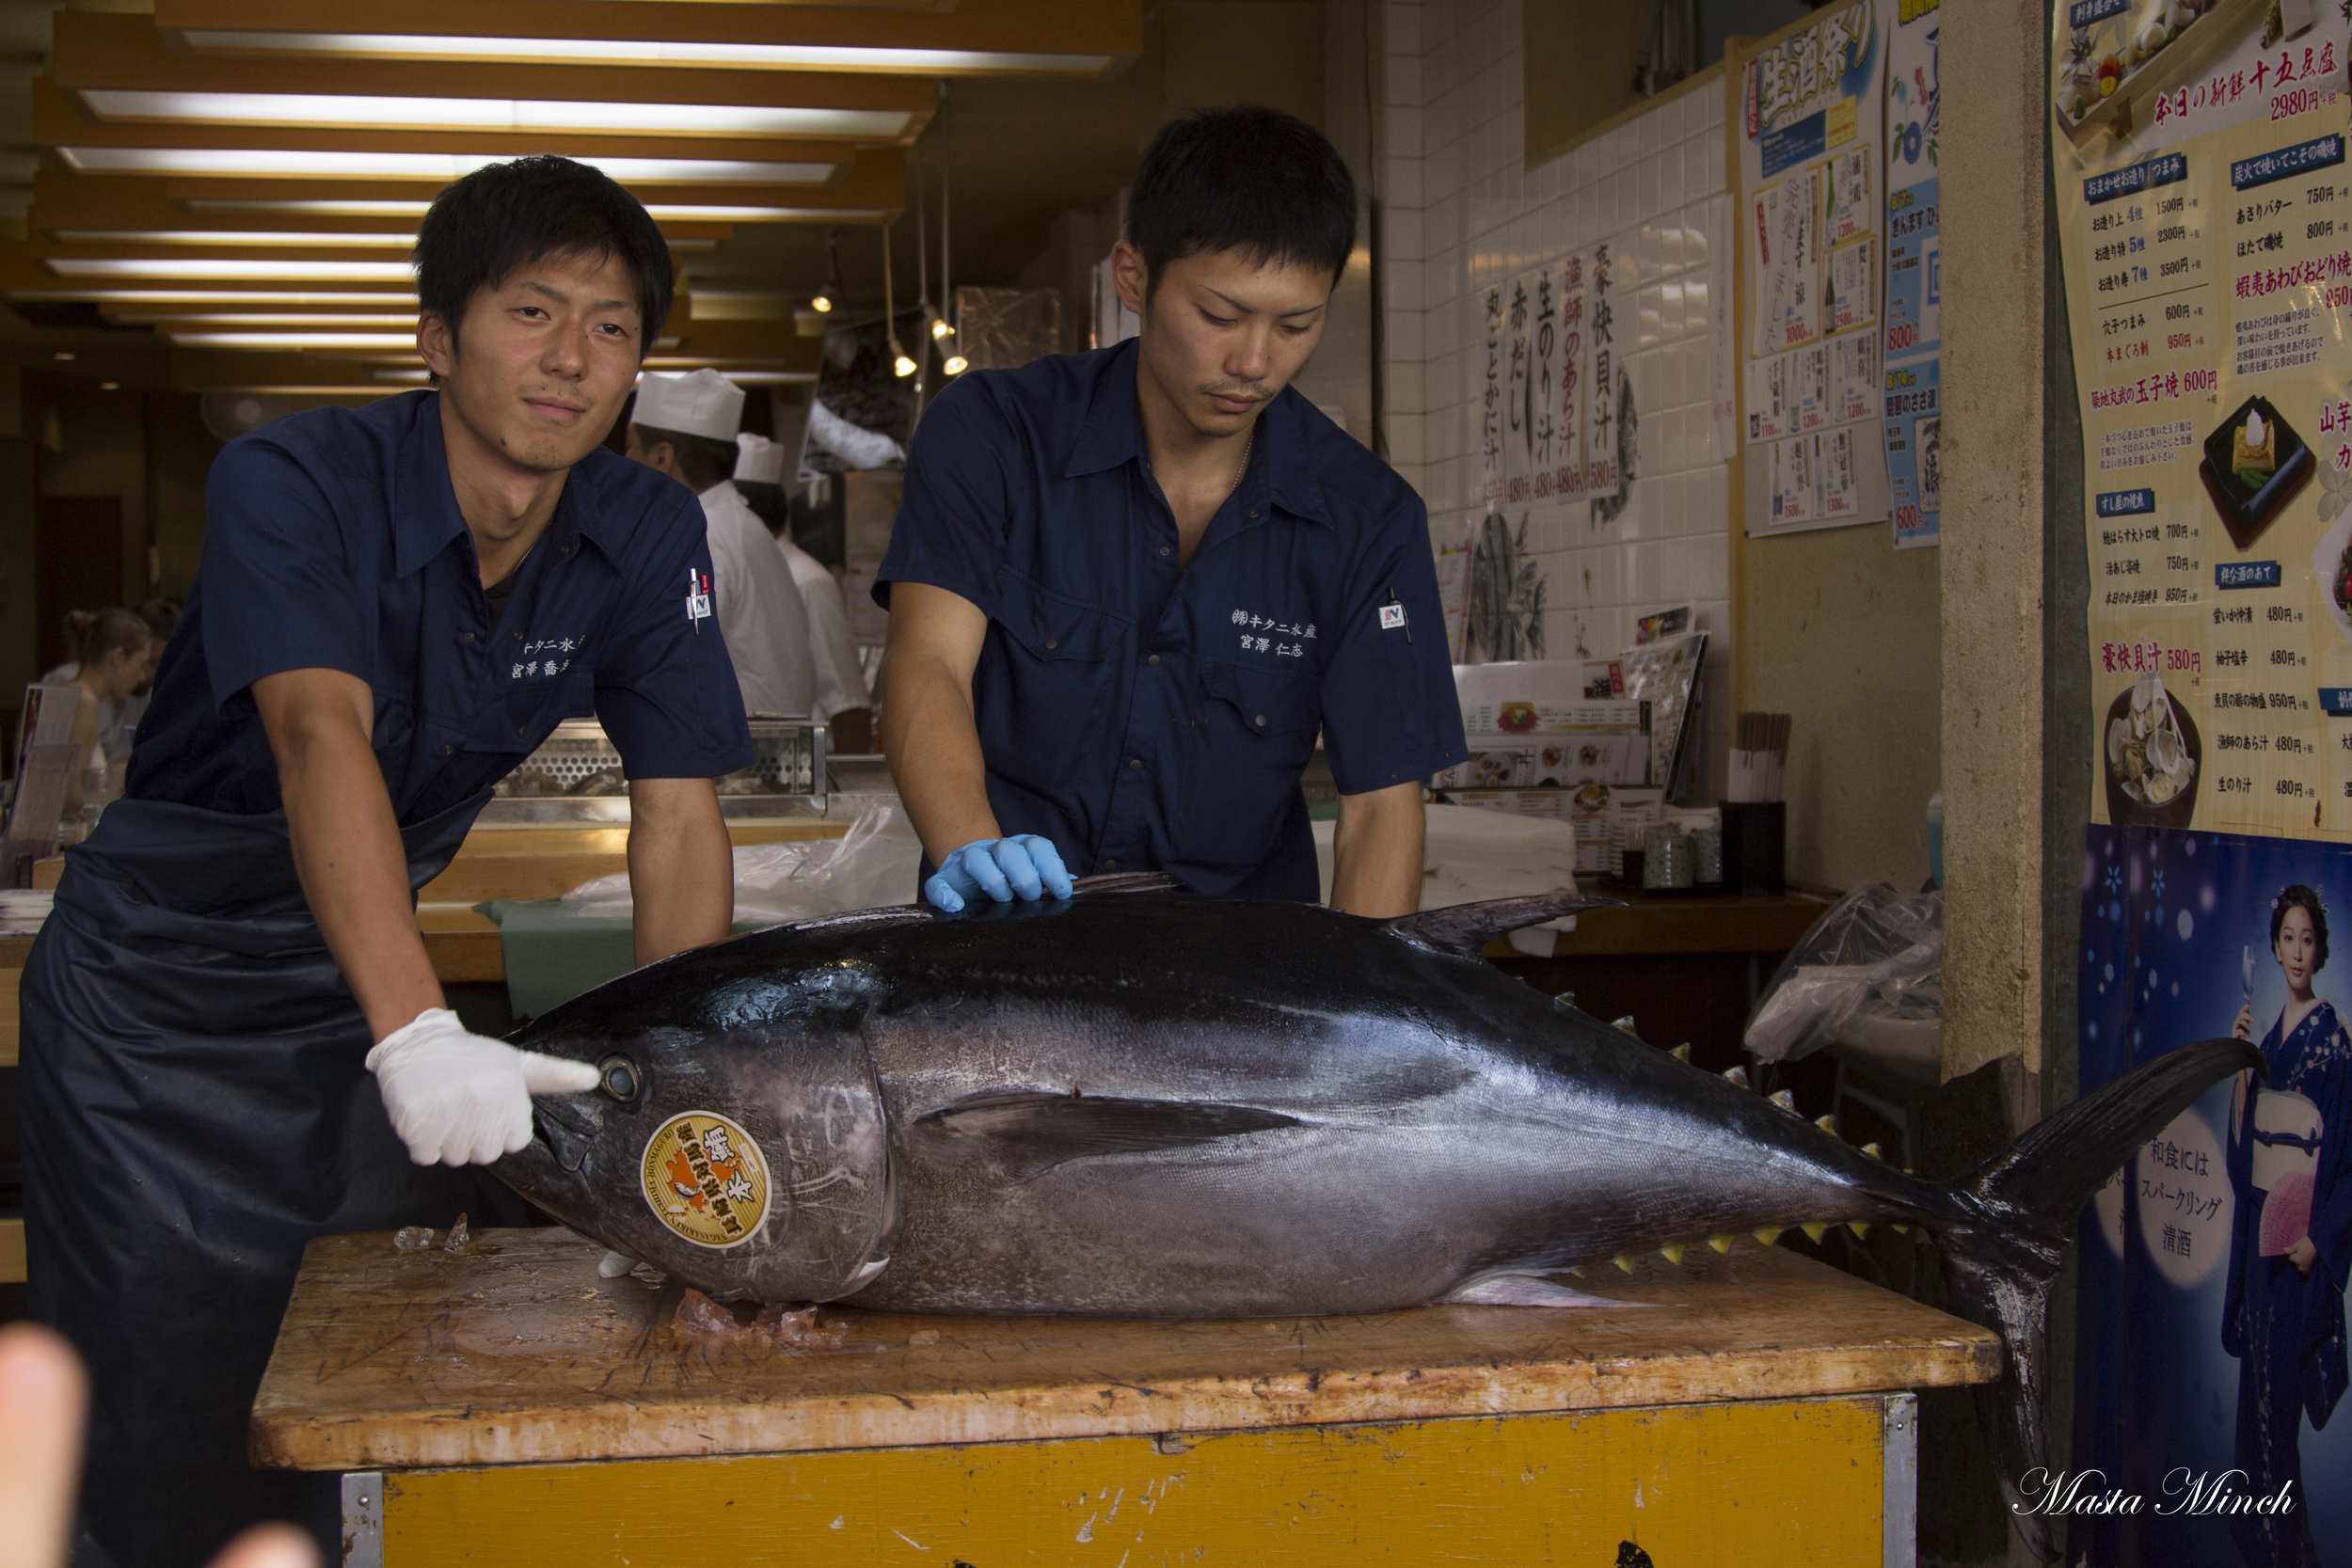 These guys showing off their tuna they bought from the auction house in the morning